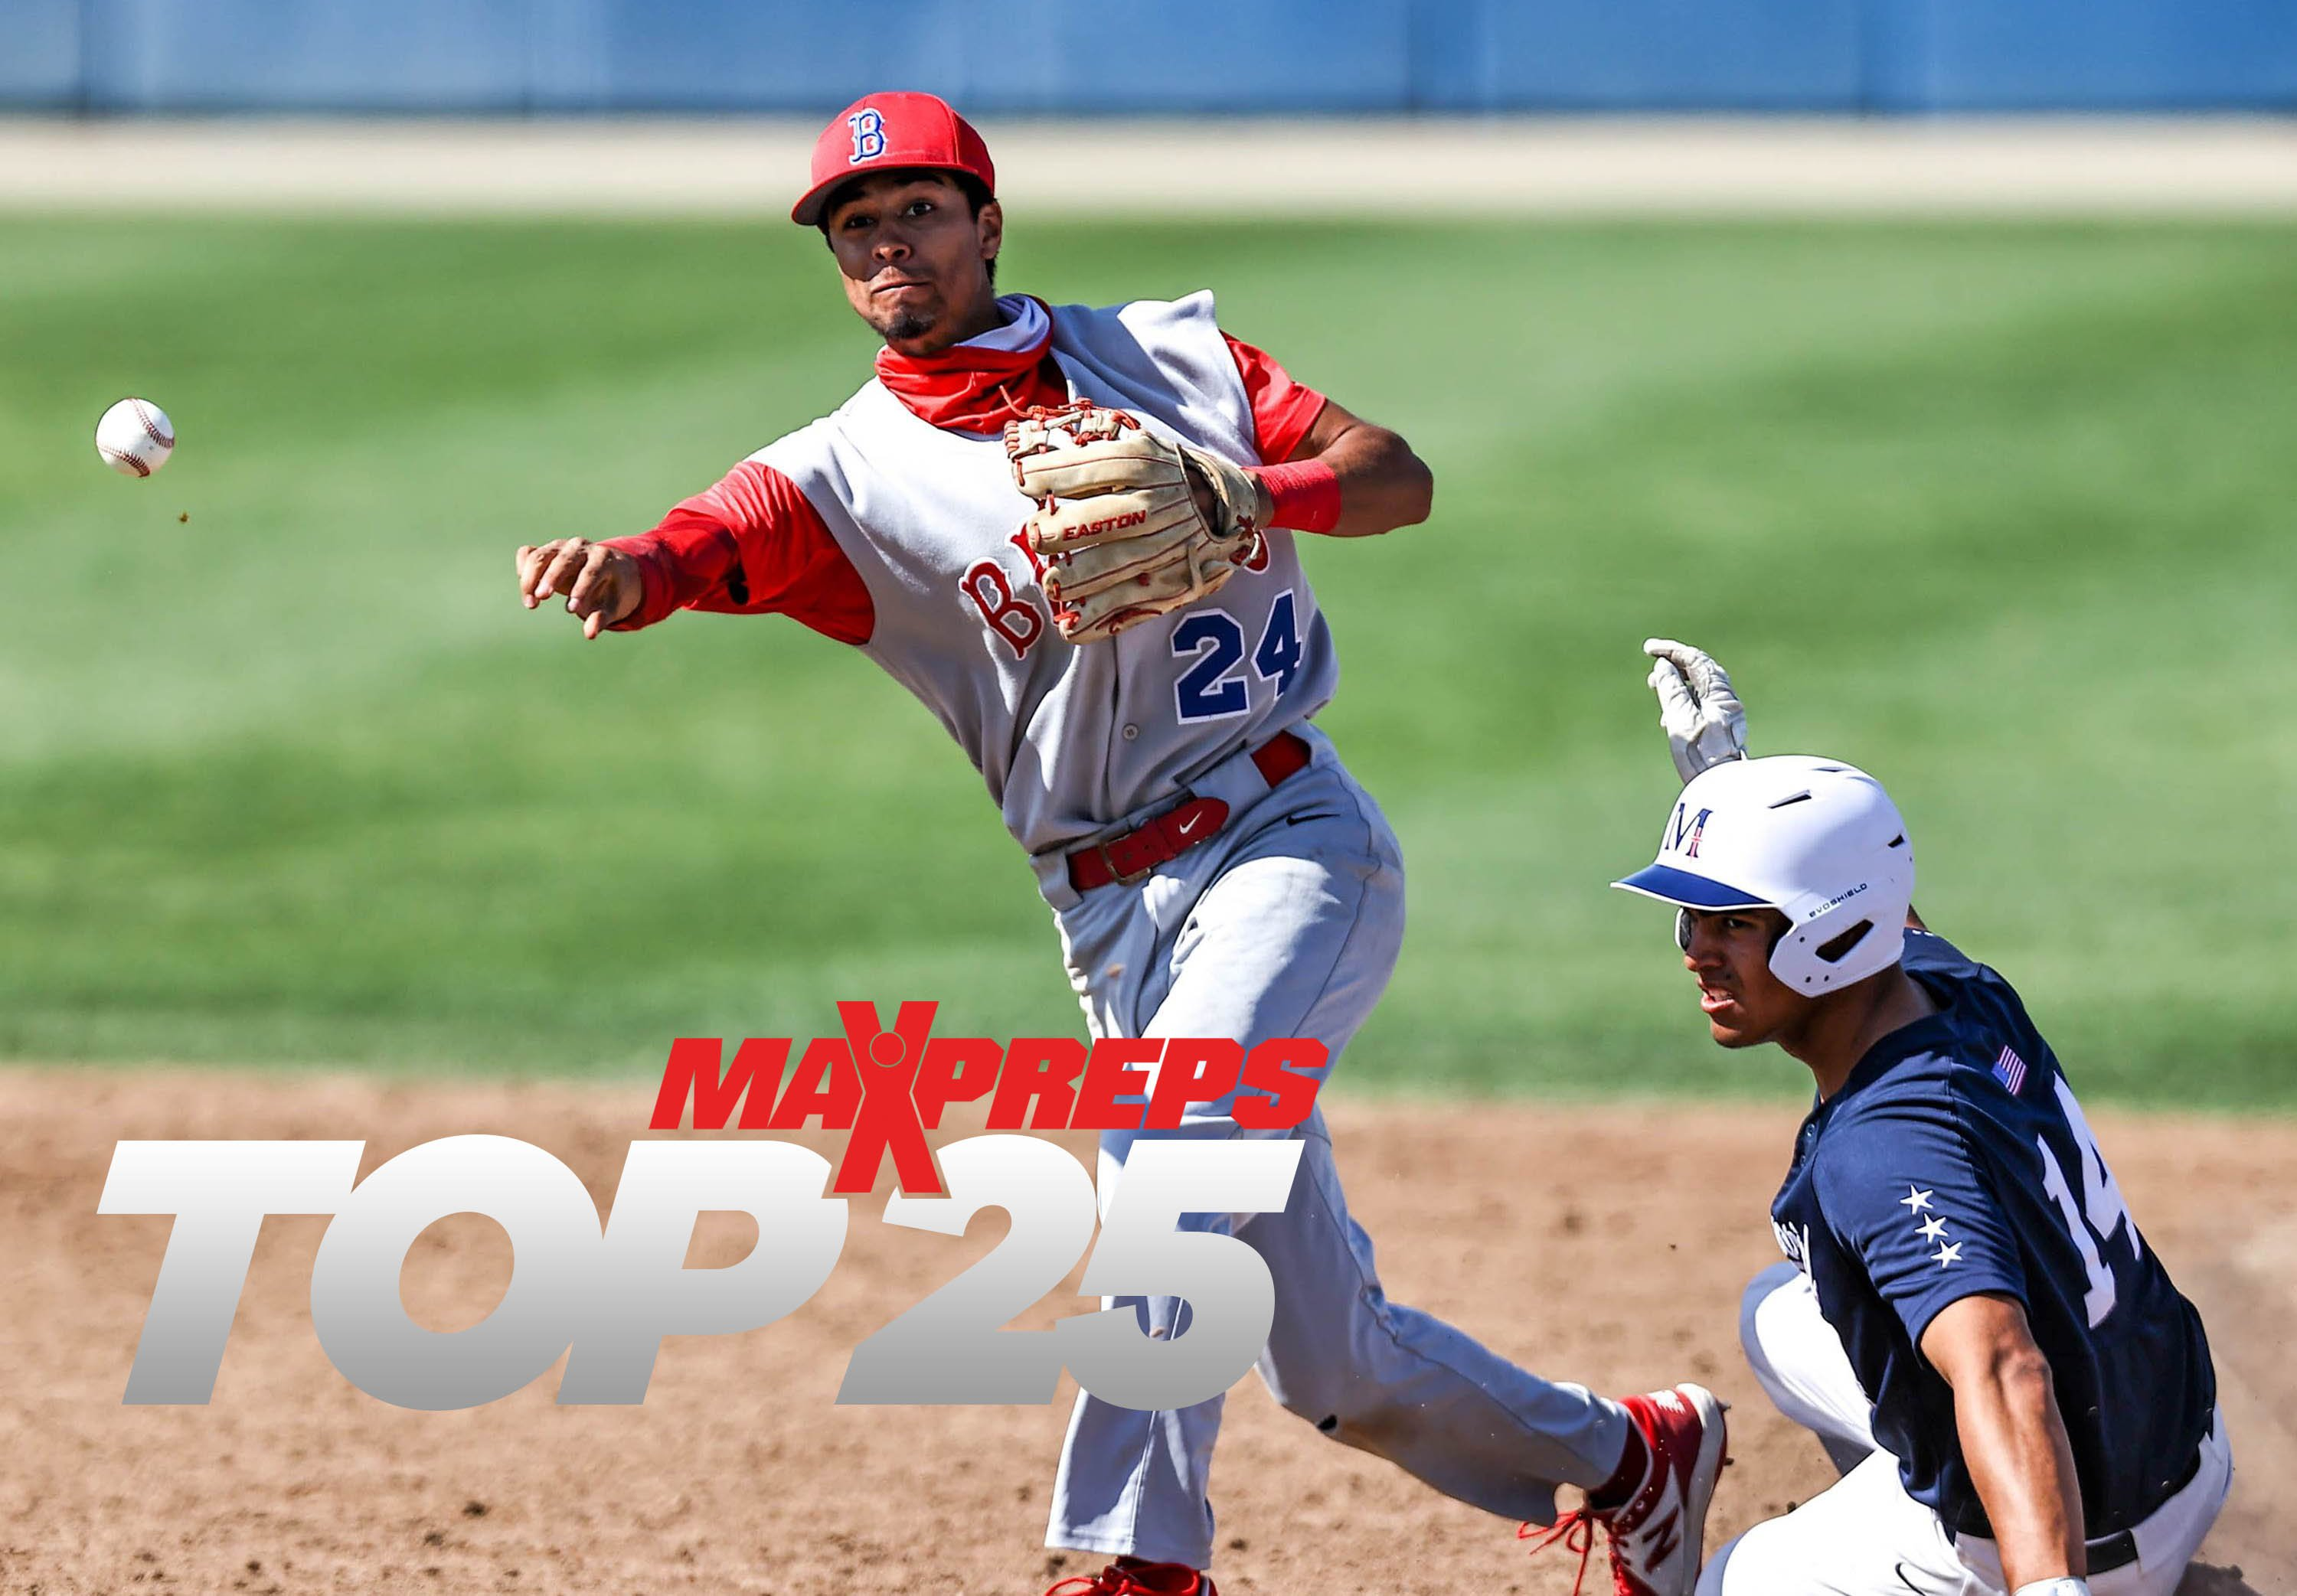 Buchanan climbs into this week's MaxPreps Top 25 rankings.